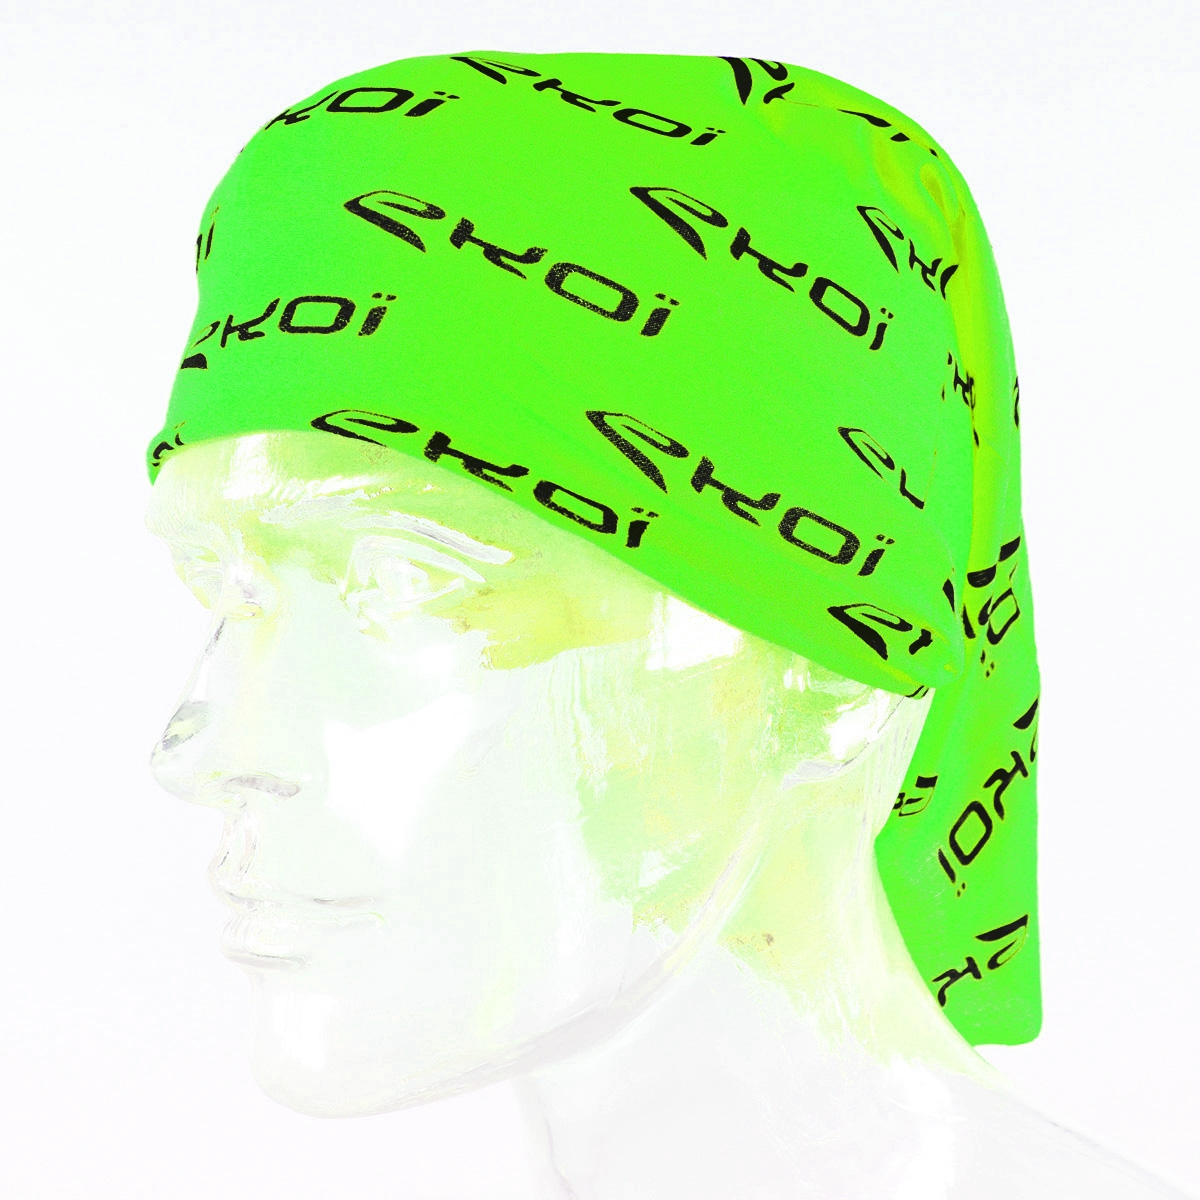 bandana tour de cou ekoi verde fluo ekoi. Black Bedroom Furniture Sets. Home Design Ideas